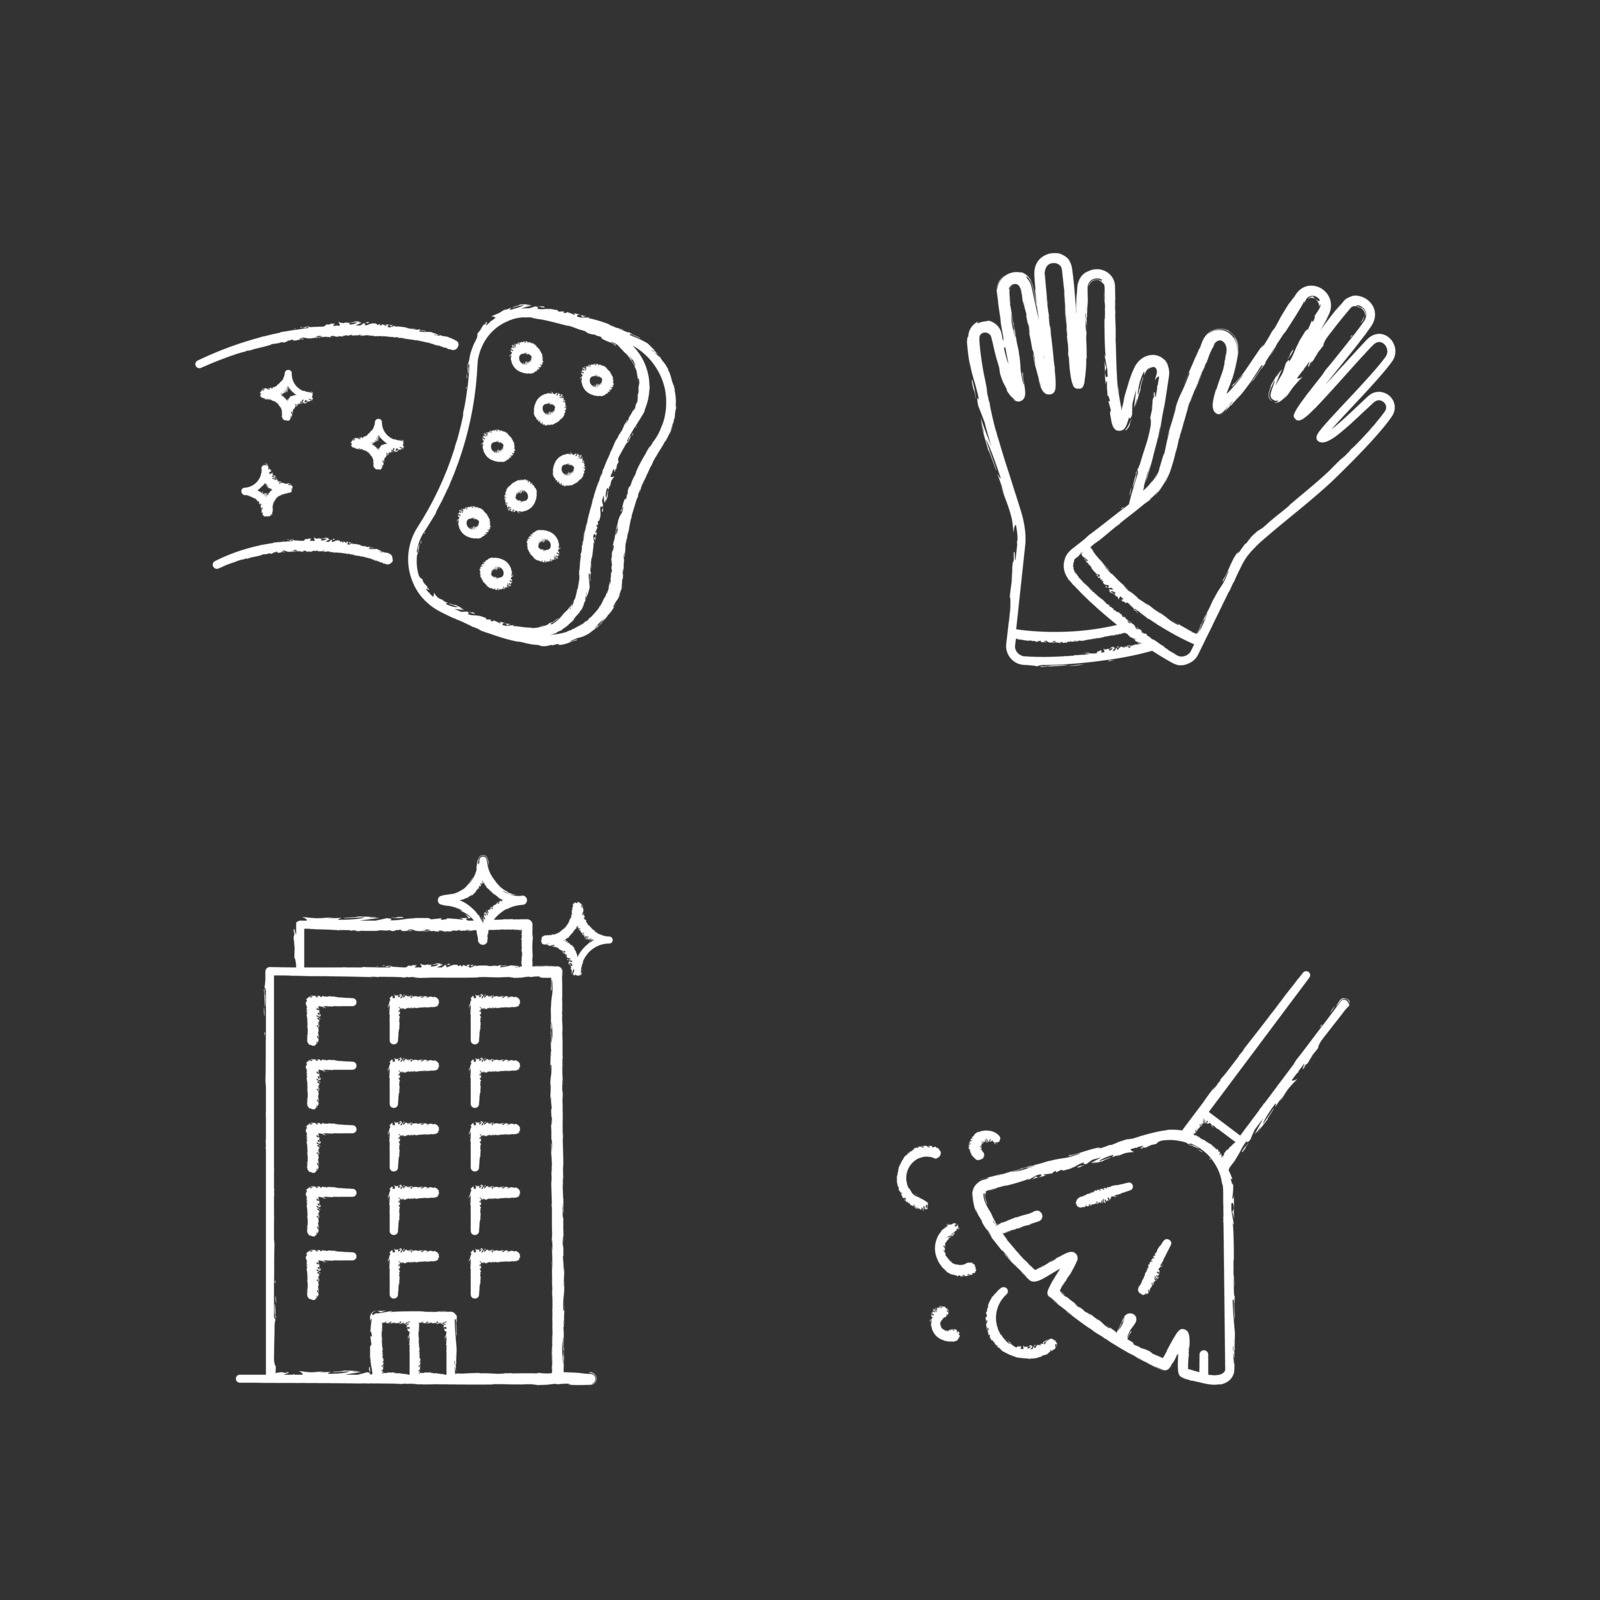 Cleaning service chalk icons set. Household gloves, sweeping broom, sponge, clean offices. Isolated vector chalkboard illustrations